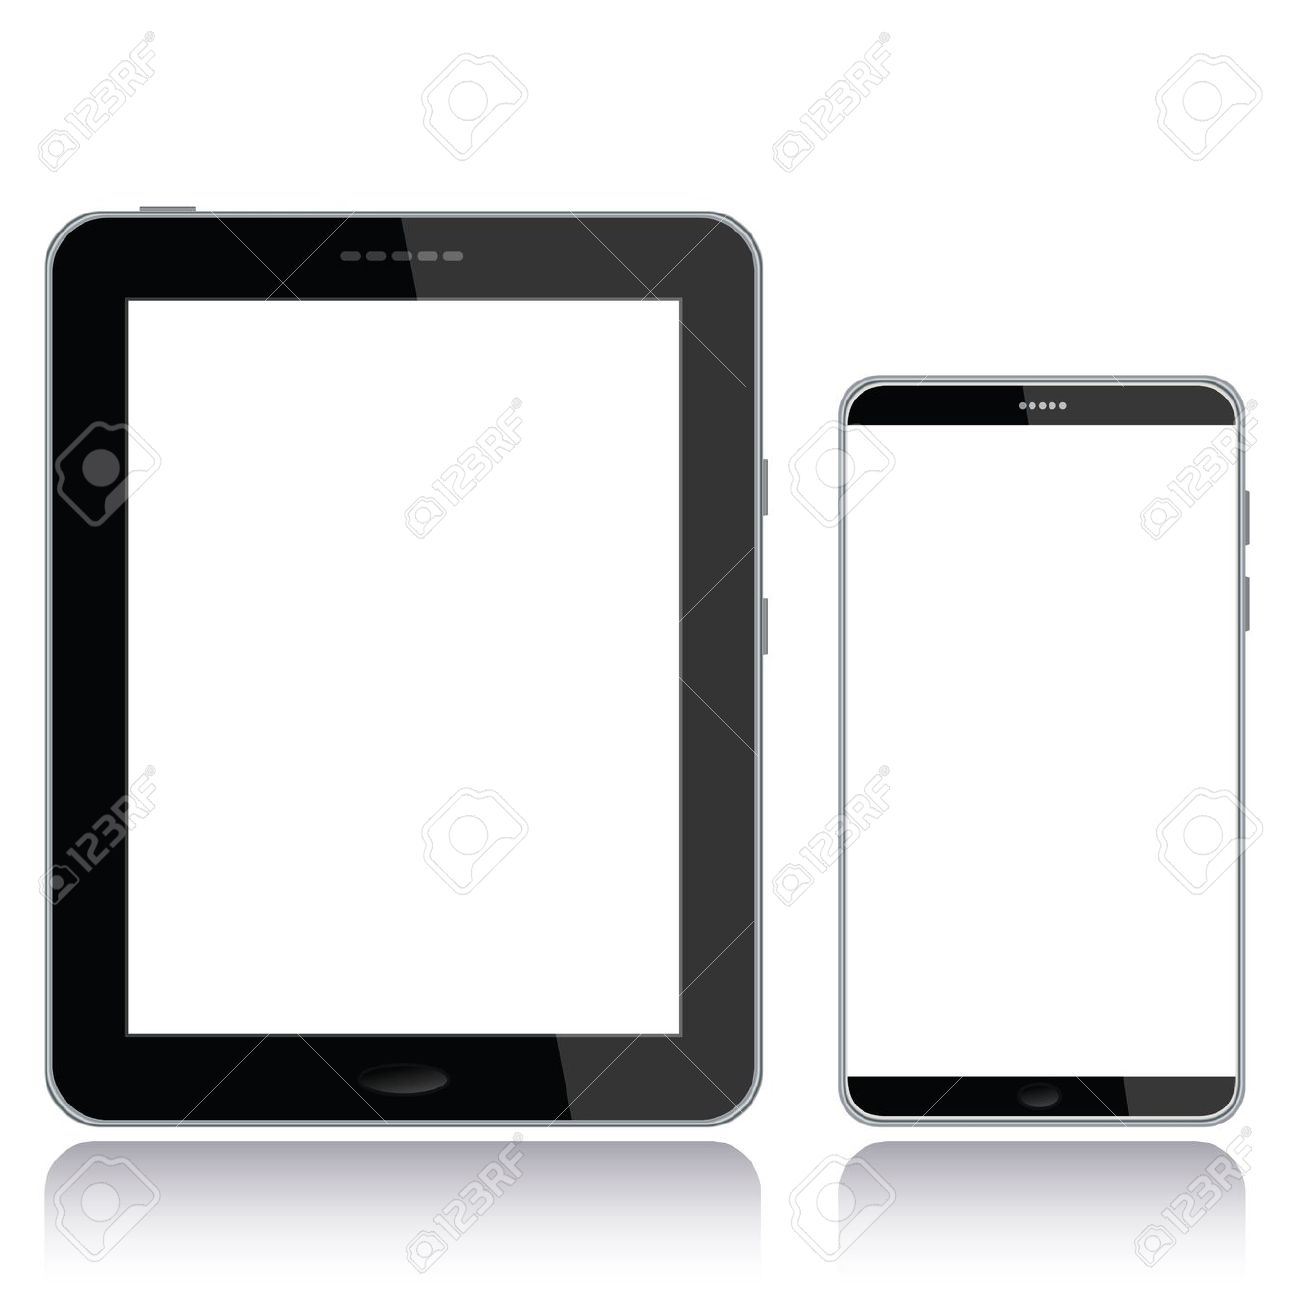 Phone Tablet Clipart.